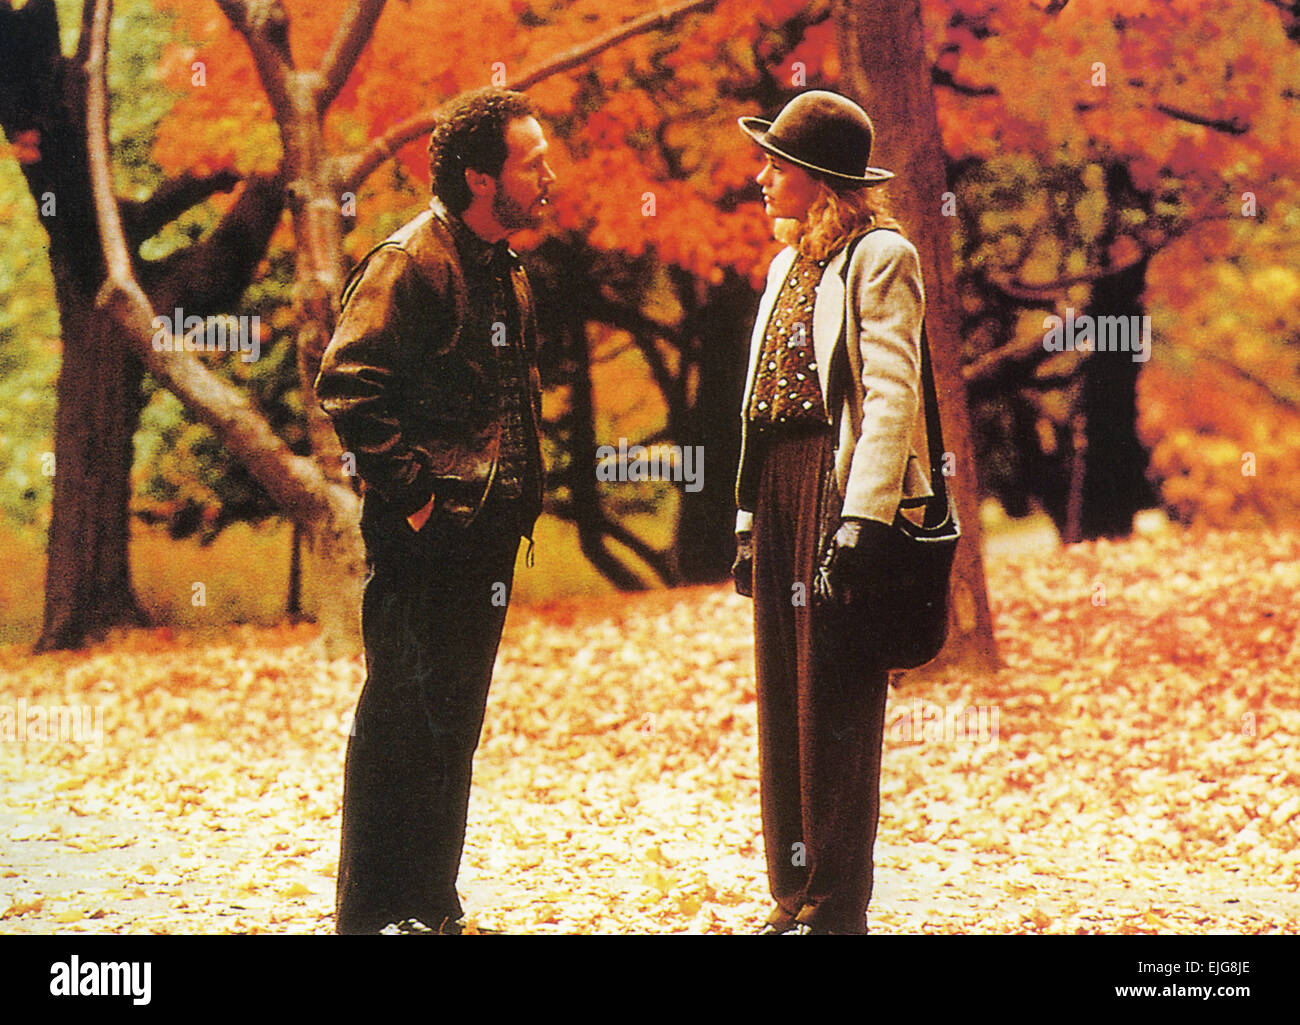 WHEN HARRY MET SALLY 1989 Castle Rock film with Meg Ryan and Billy Crystal - Stock Image